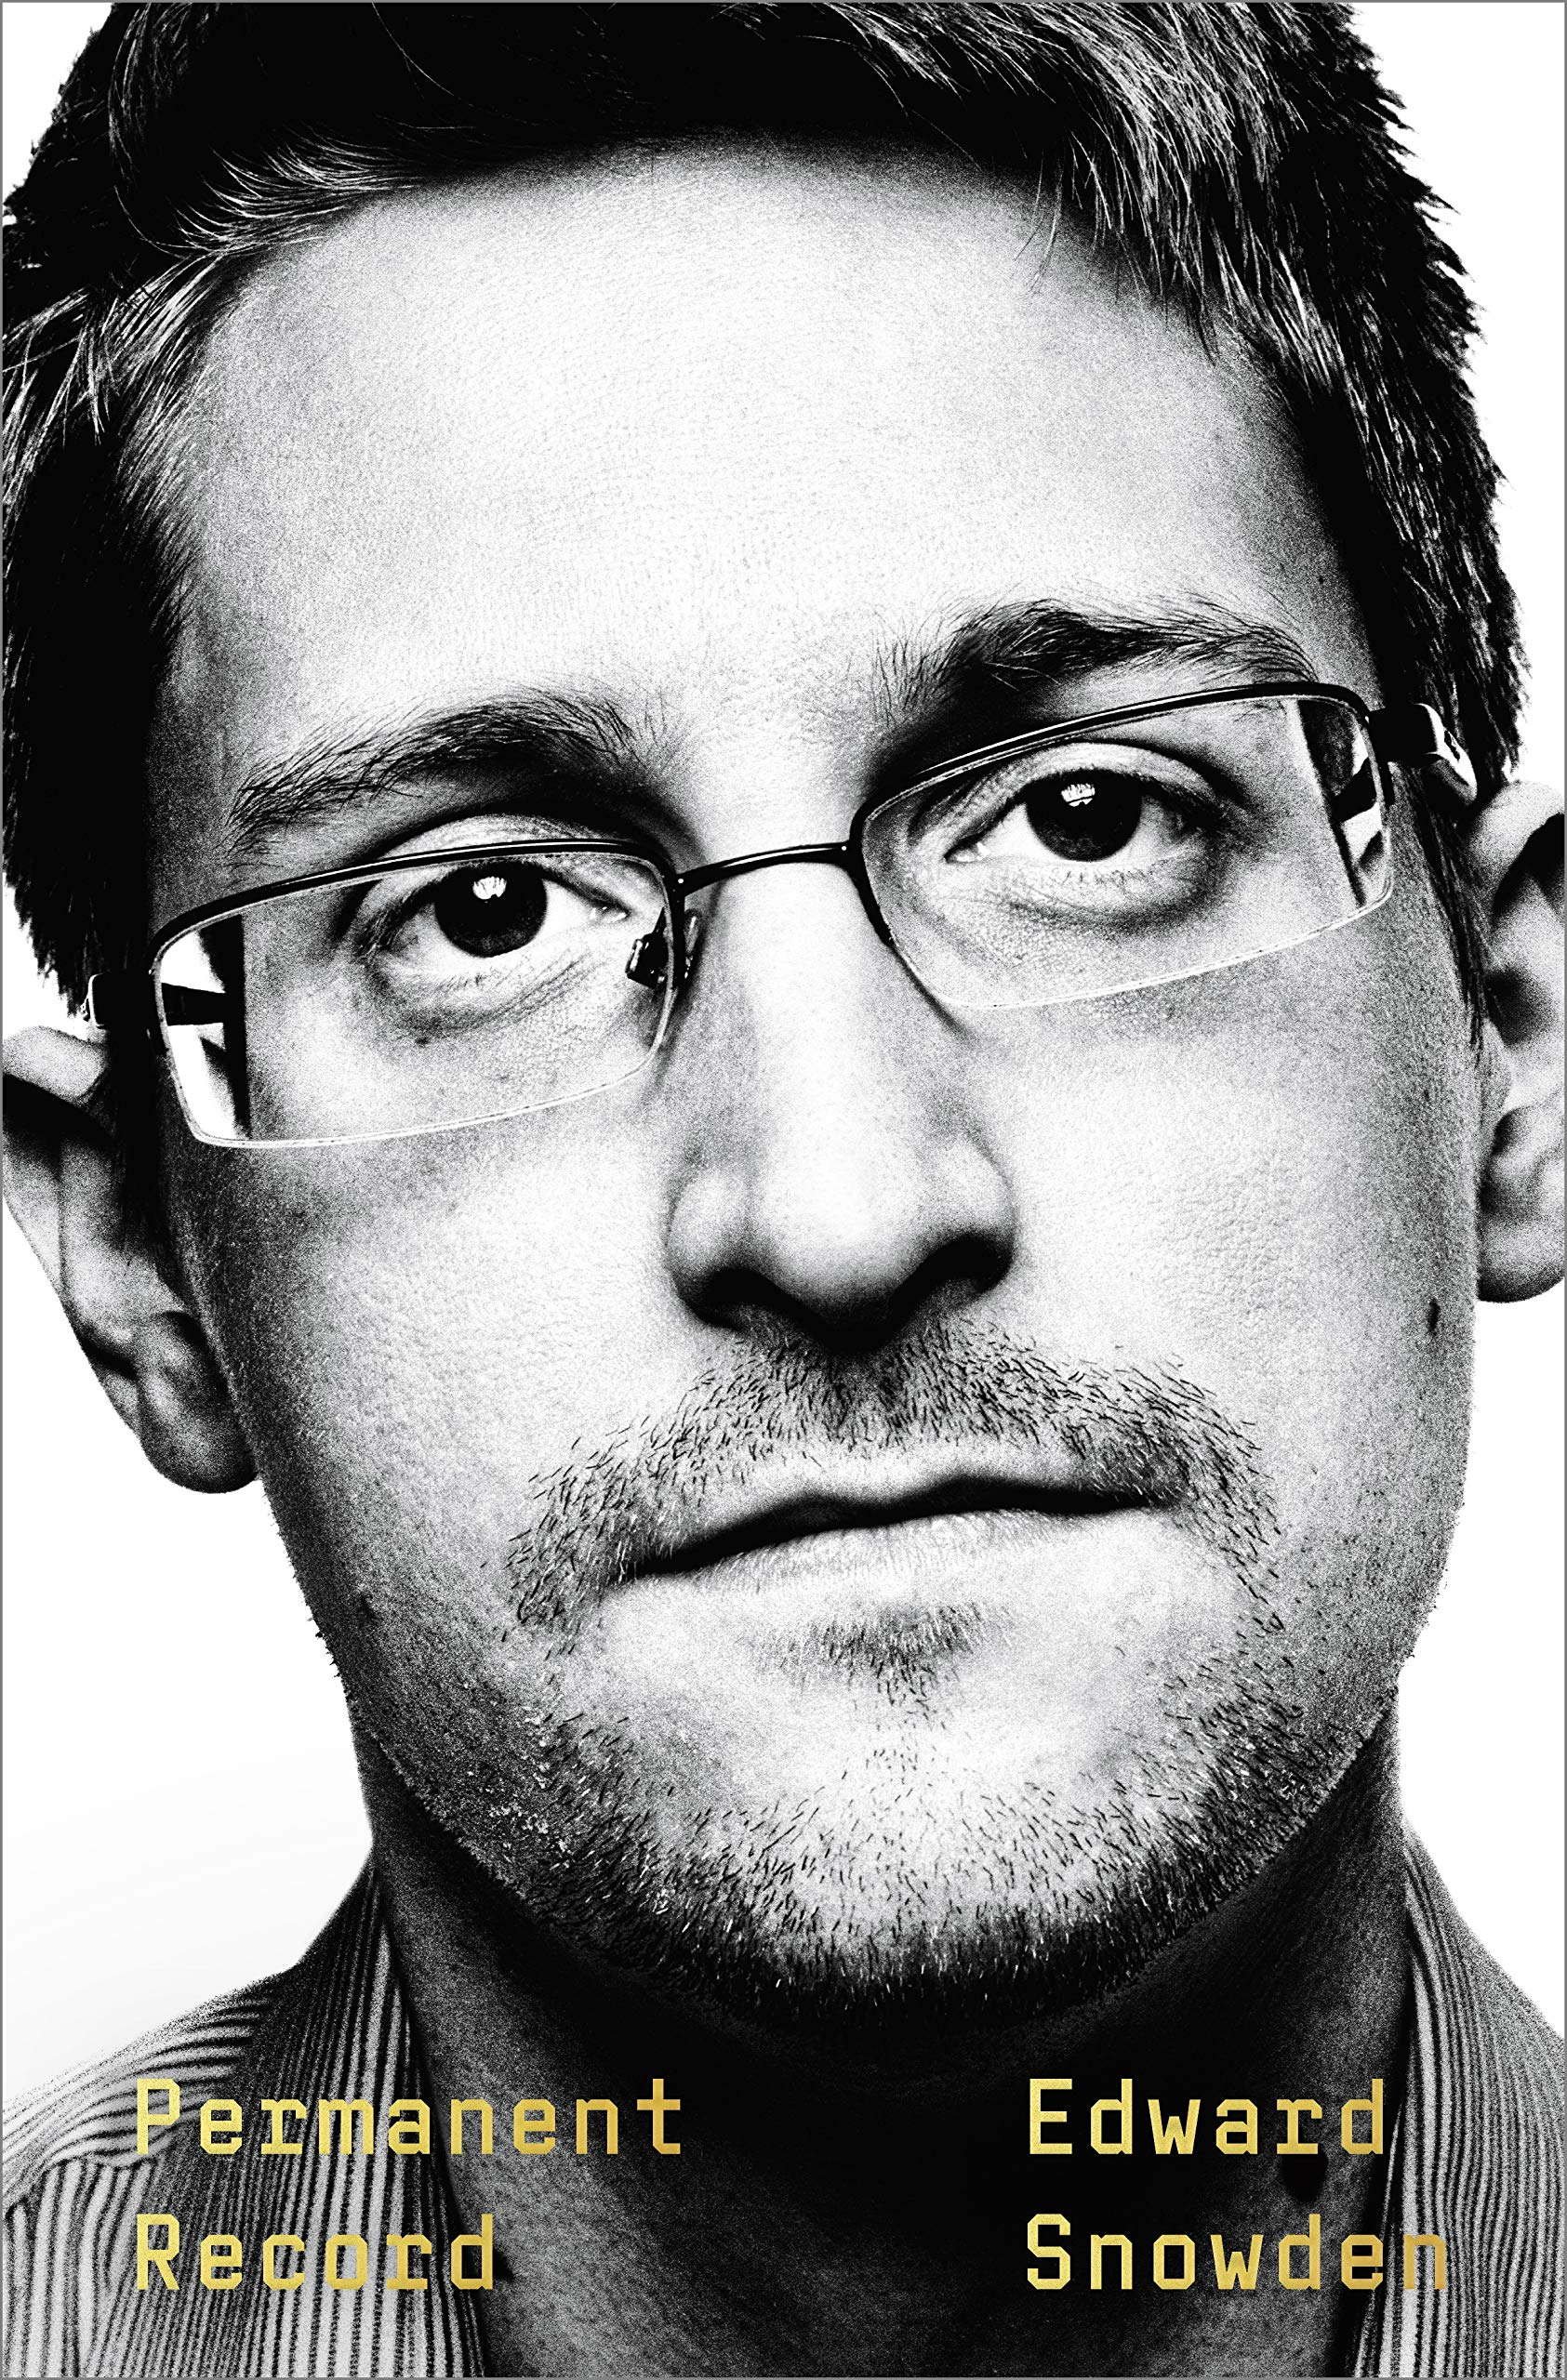 The cover of the book Permanent Record displaying a portrait of Edward Snowden